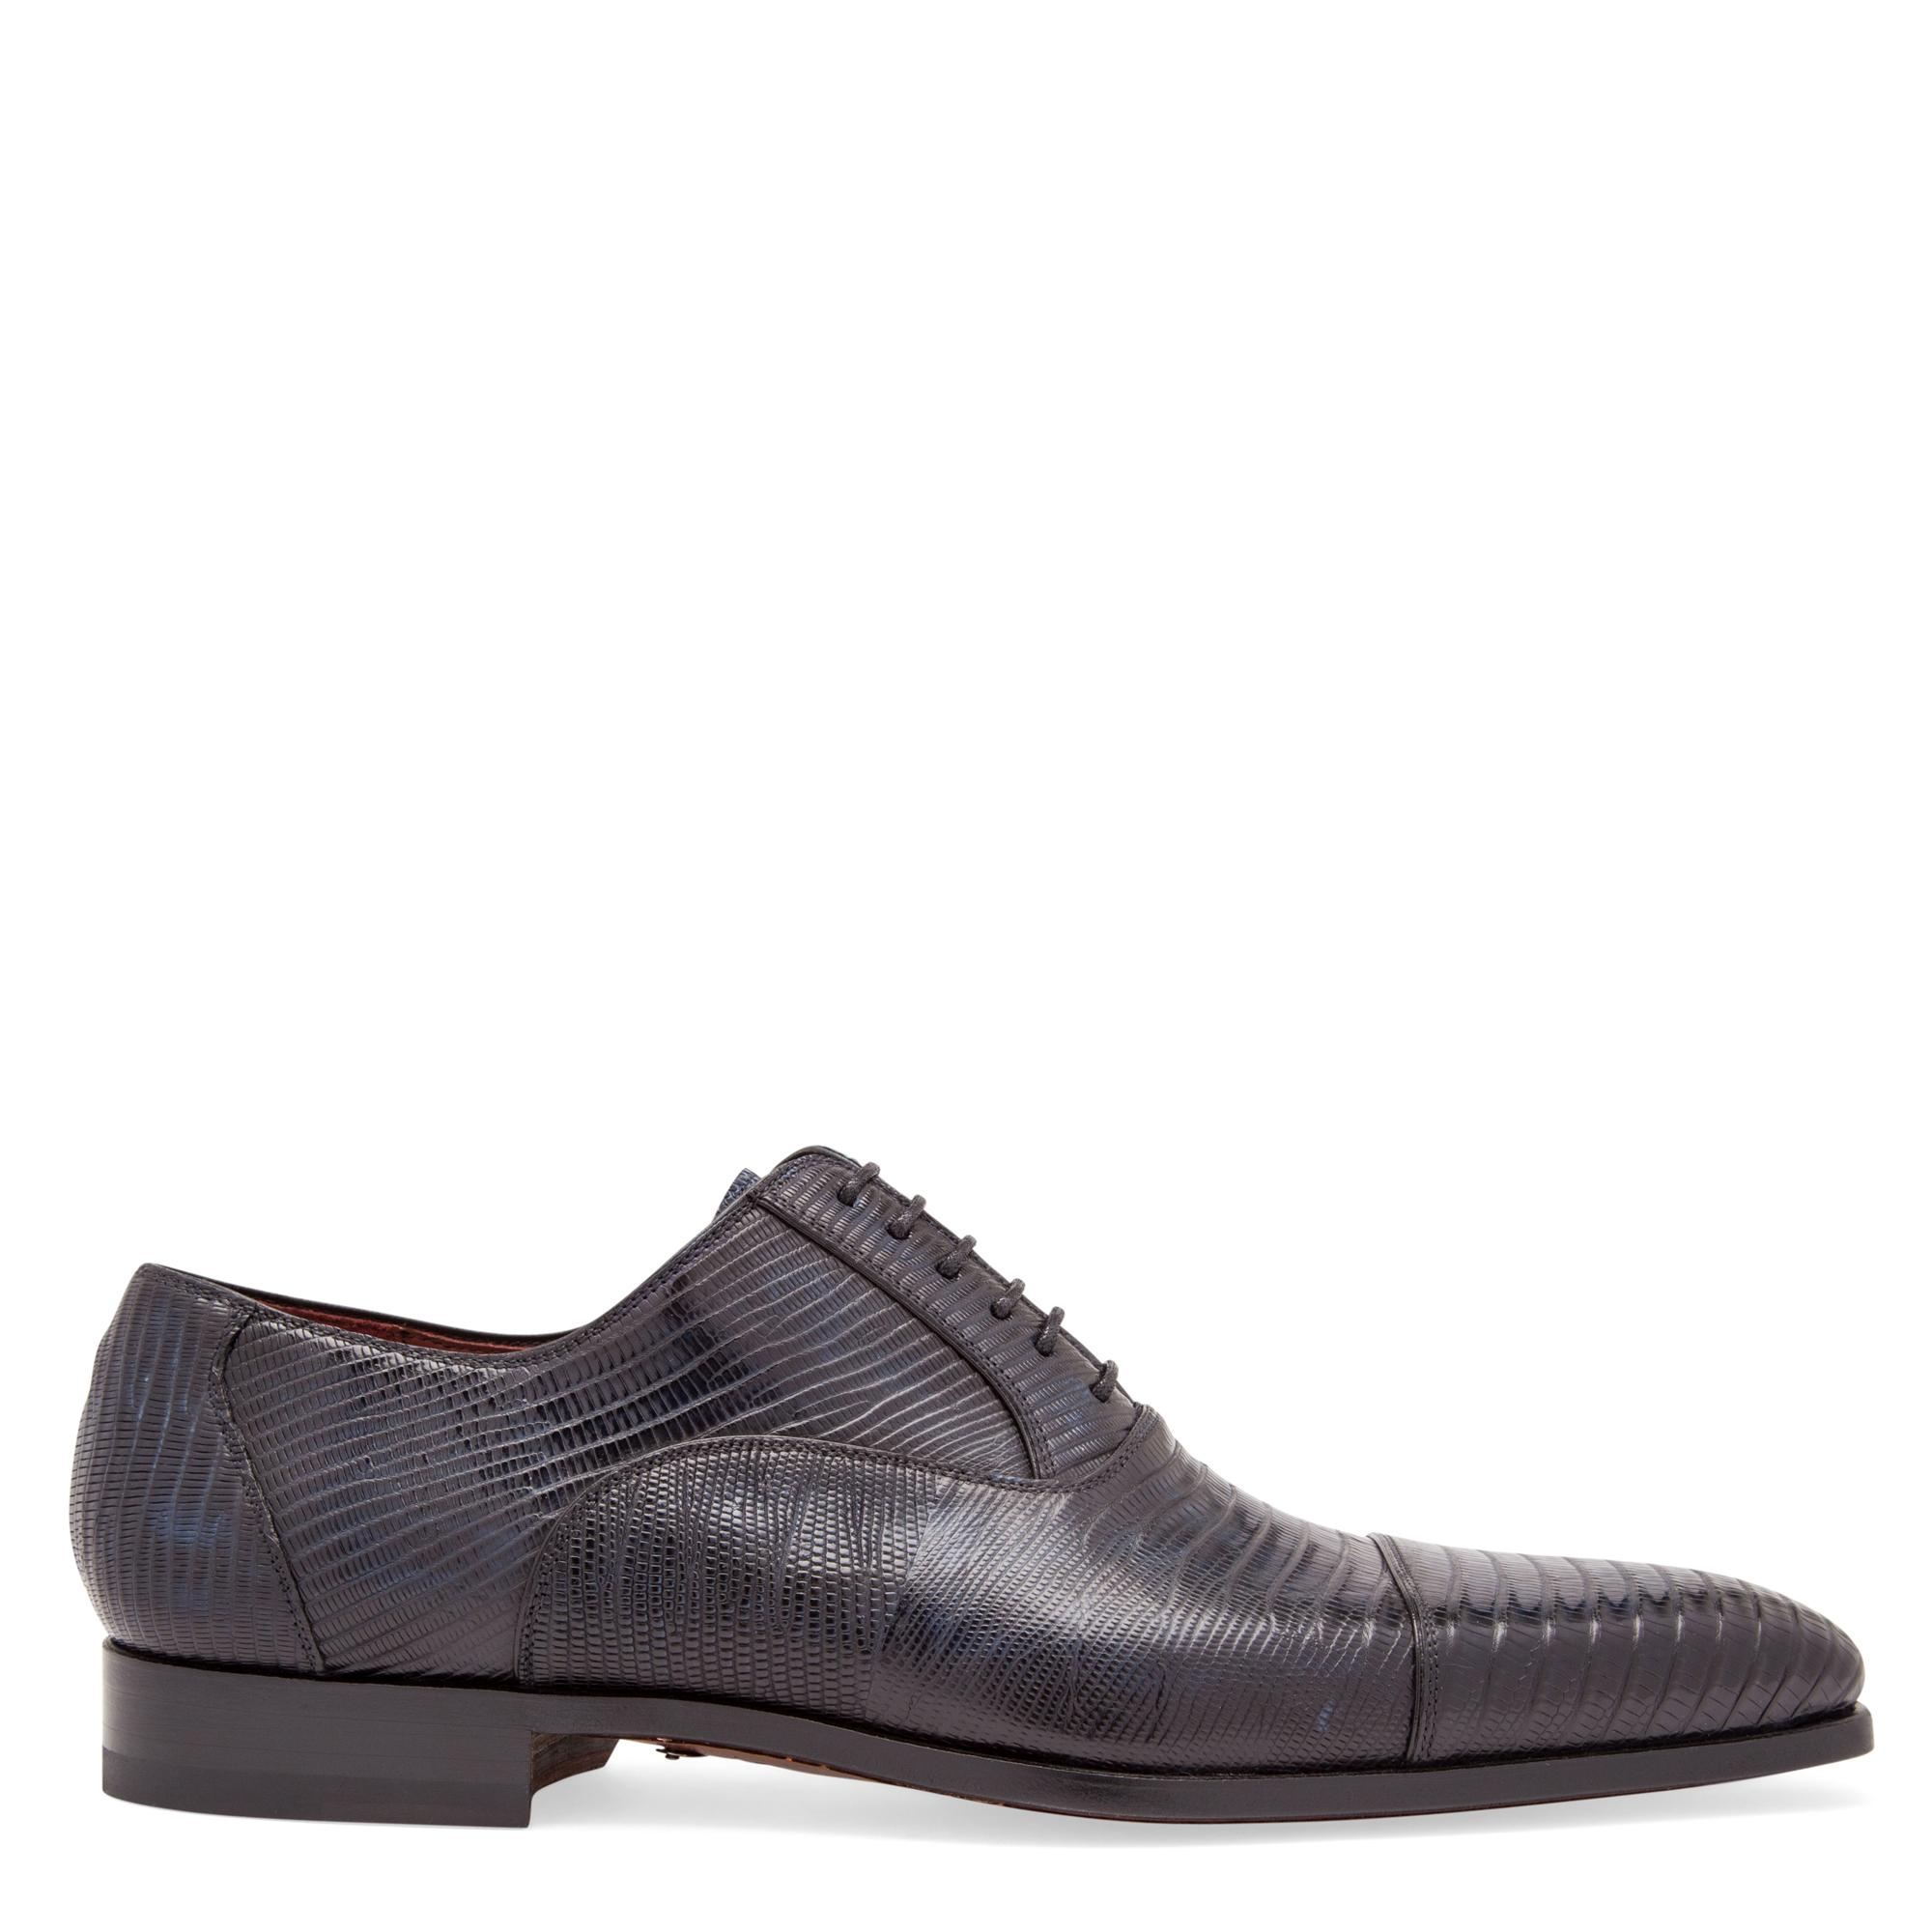 Lizard Oxford lace-up shoes